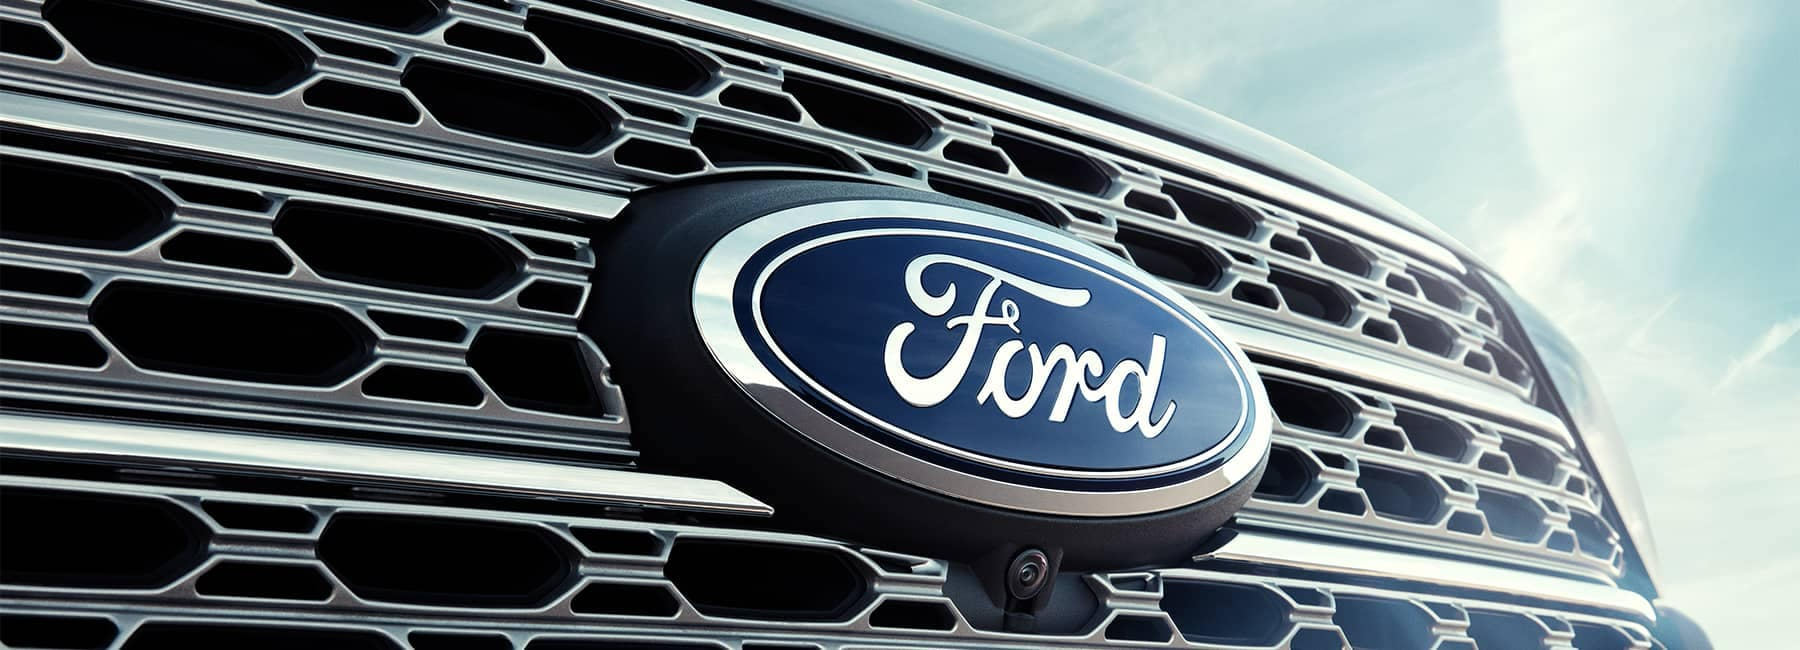 2021 Ford Explorer front grill